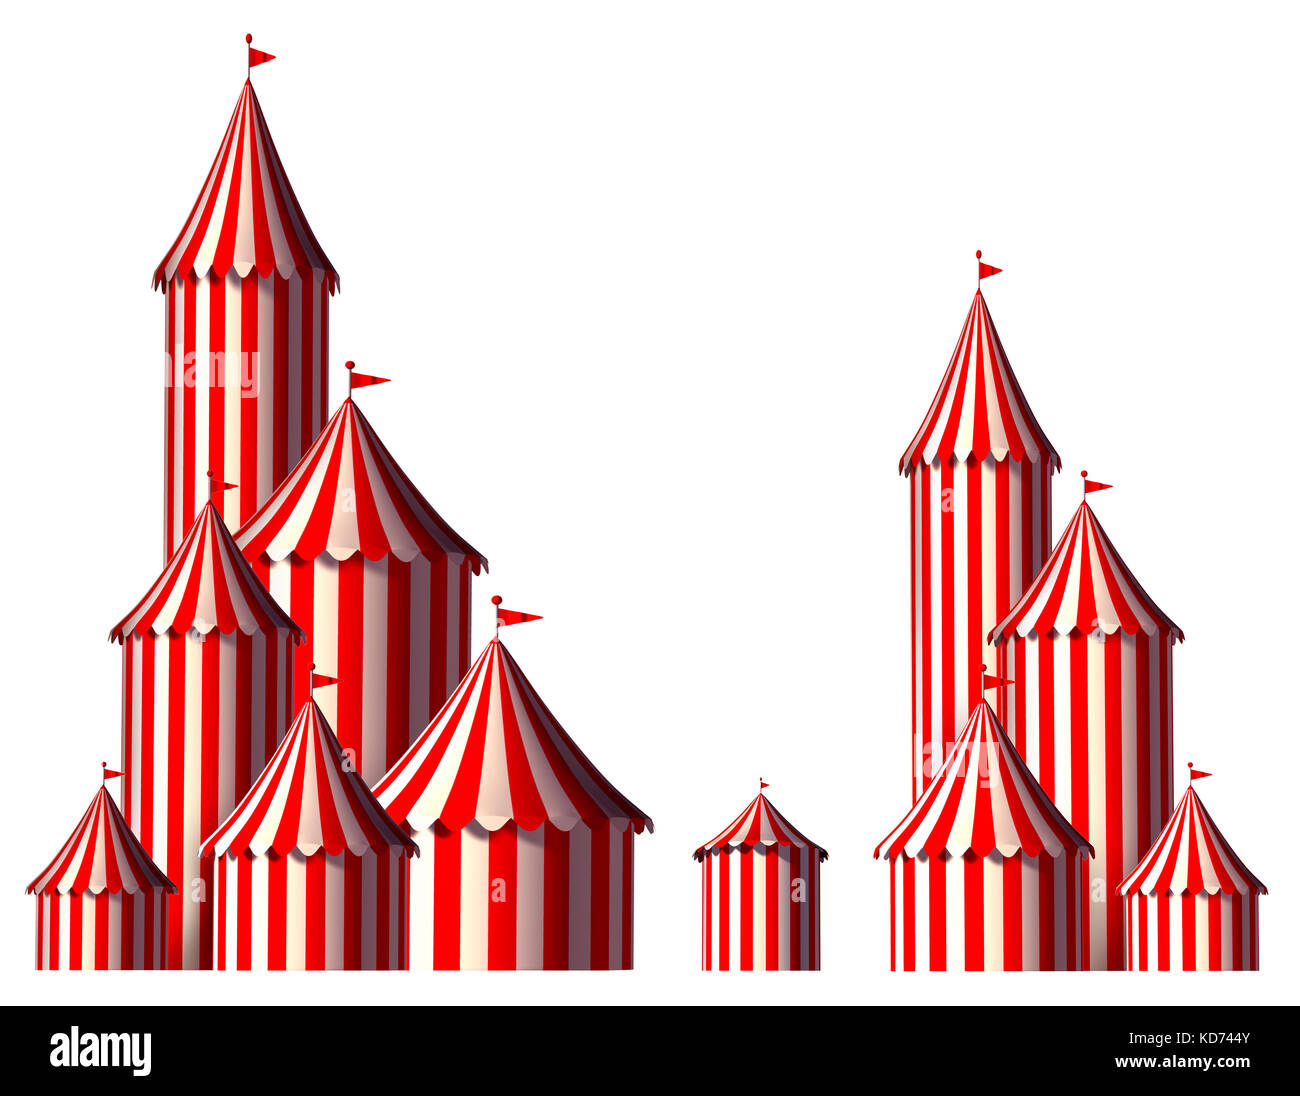 Circus tent design element as a group of big top carnival tents with an opening entrance as a fun entertainment - Stock Image